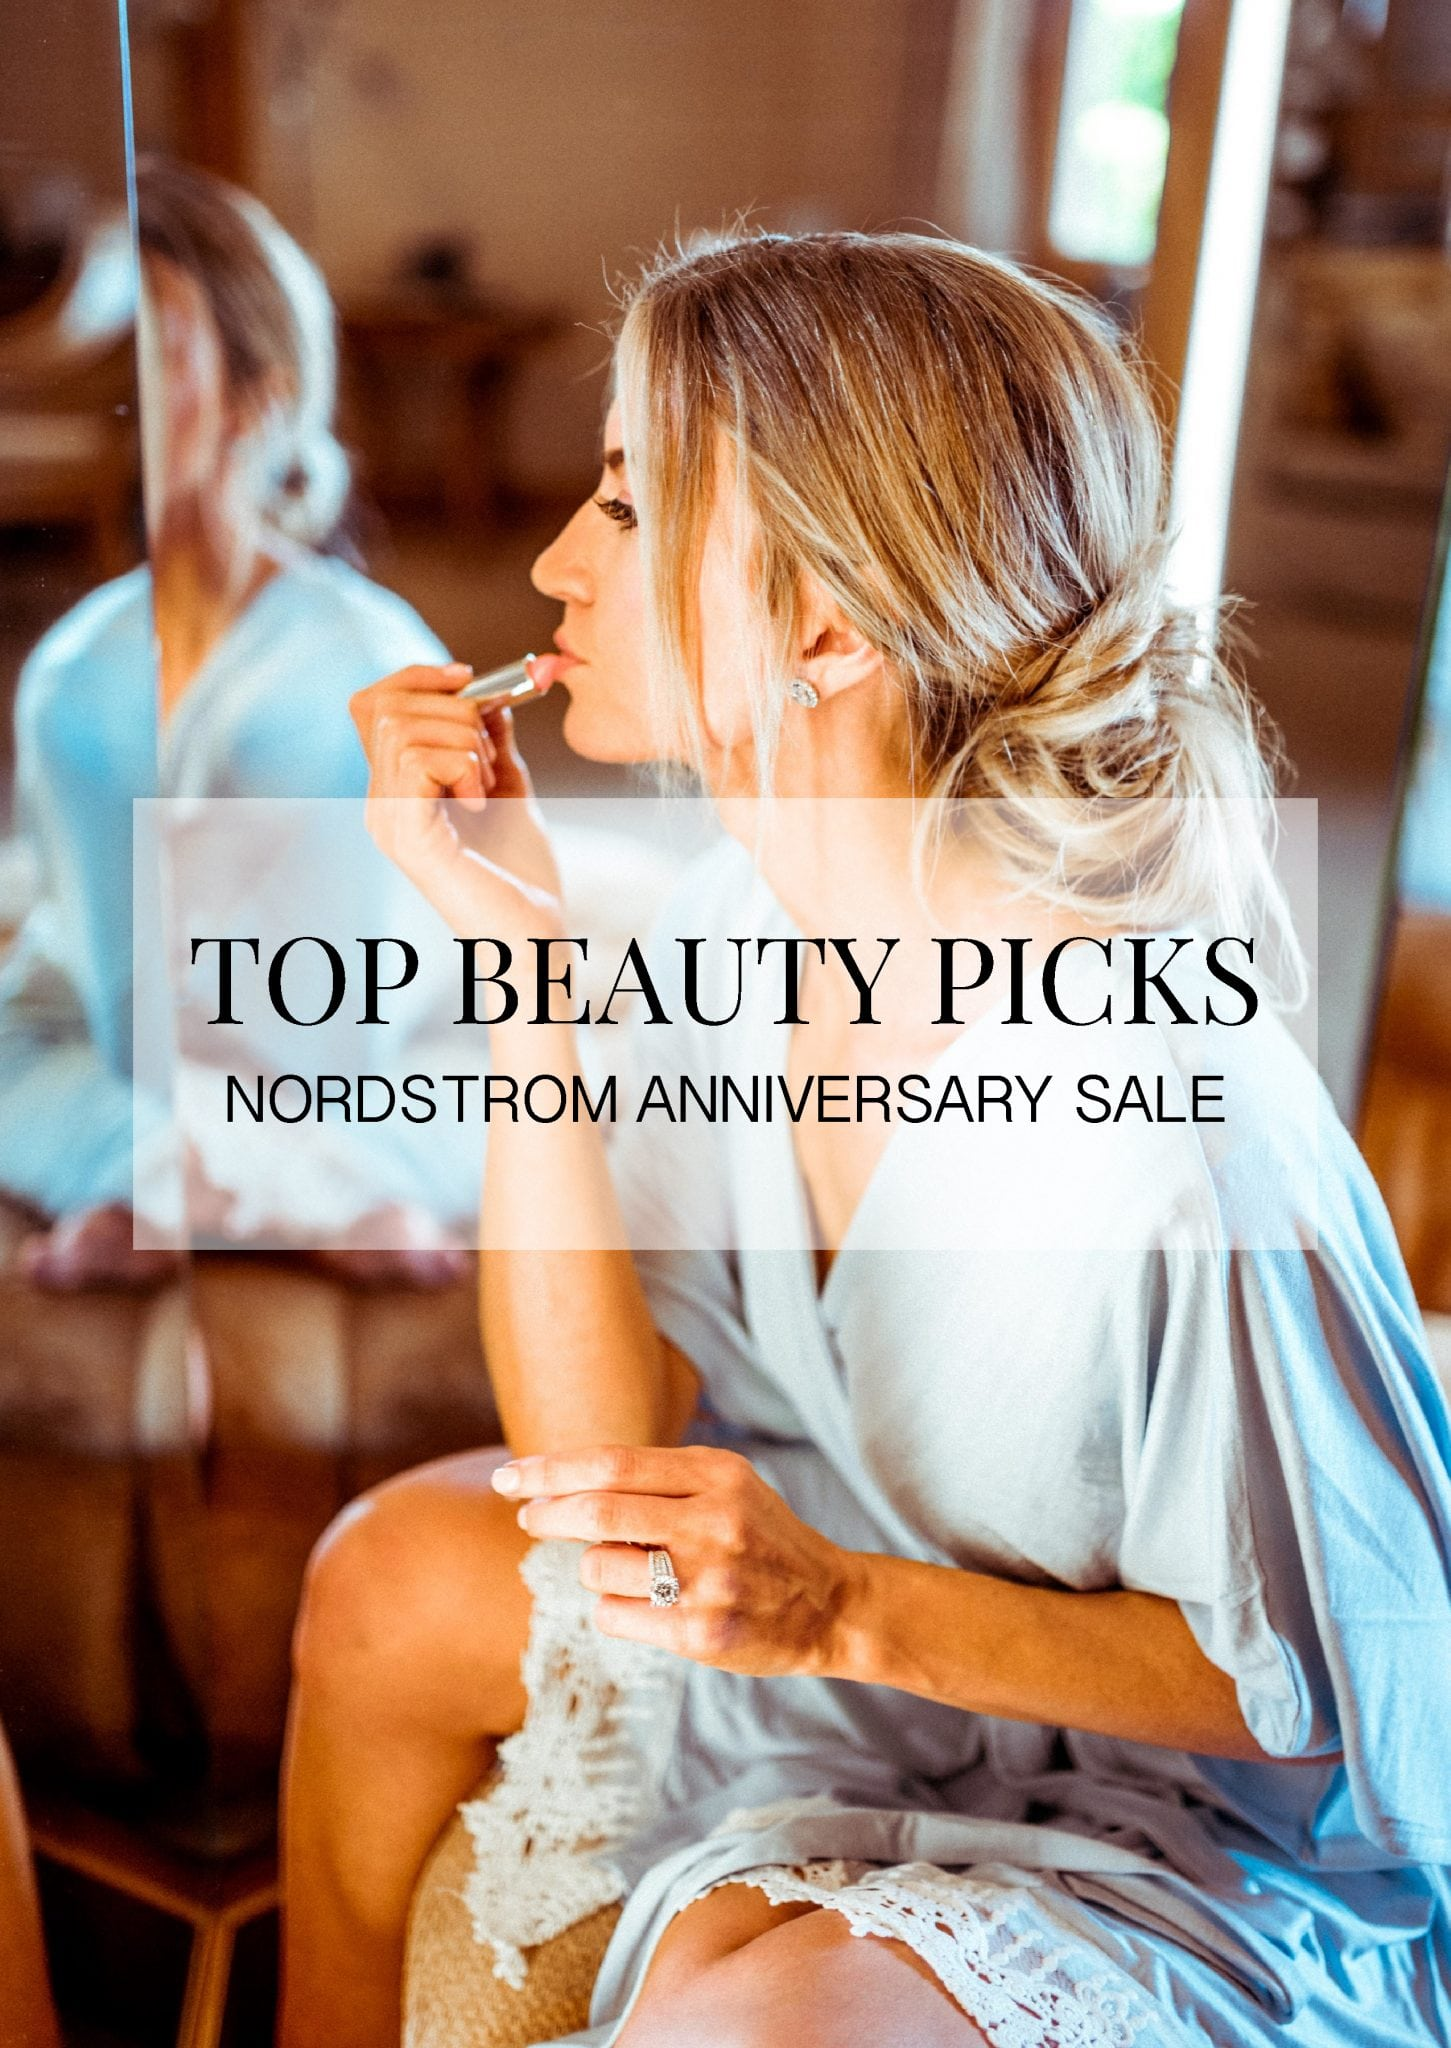 MY TOP BEAUTY PICKS OF THE NORDSTROM ANNIVERSARY SALE